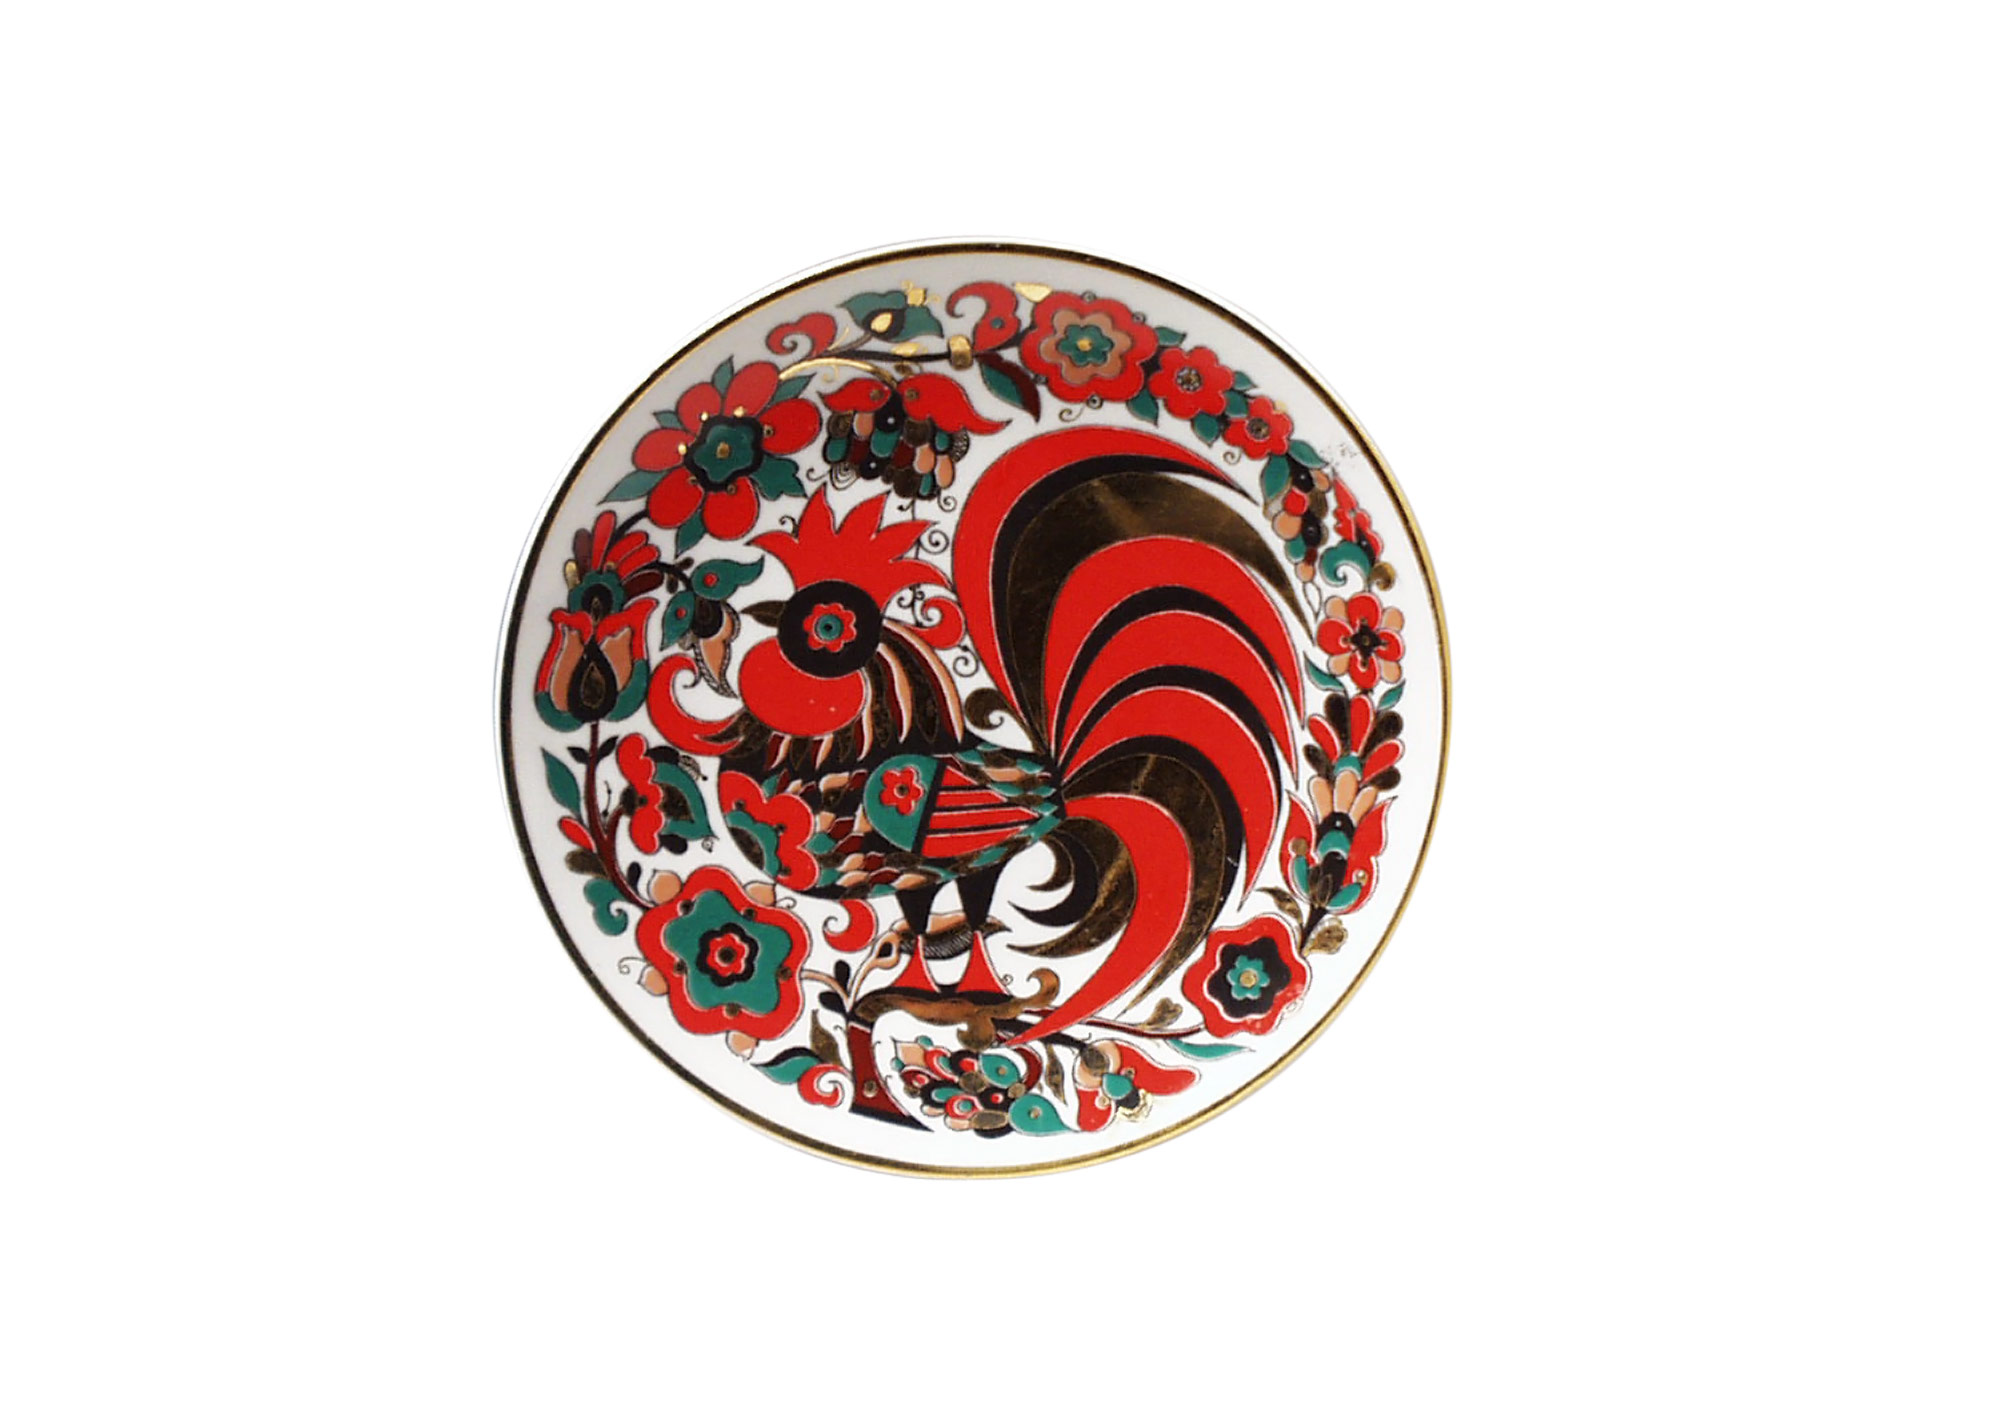 Red Rooster Decorative Plate 8   sc 1 st  Golden Cockerel & Red Rooster Decorative Plate 8